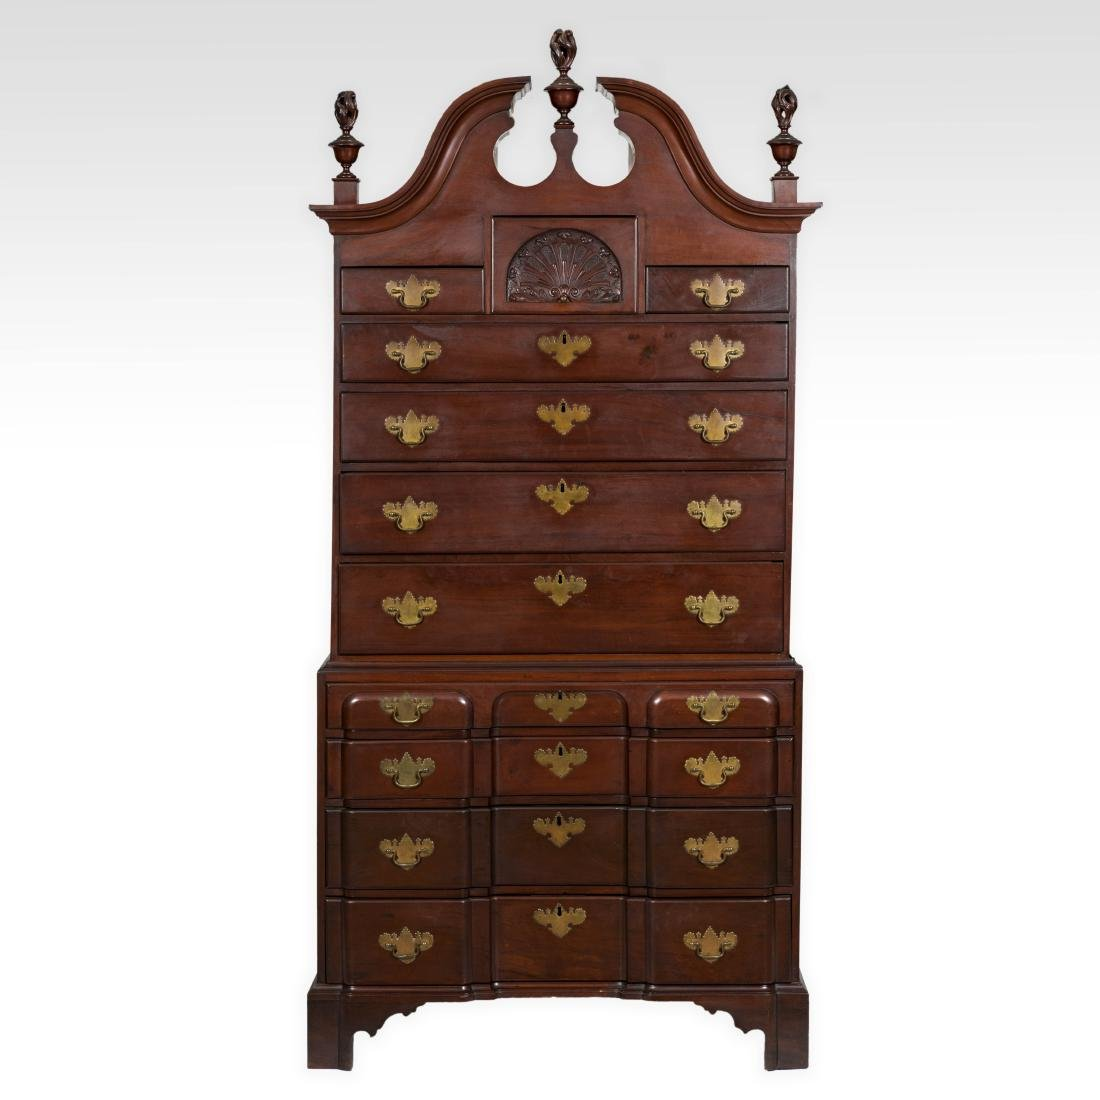 Antique Mahogany Blockfront Chest - Providence - c.1780